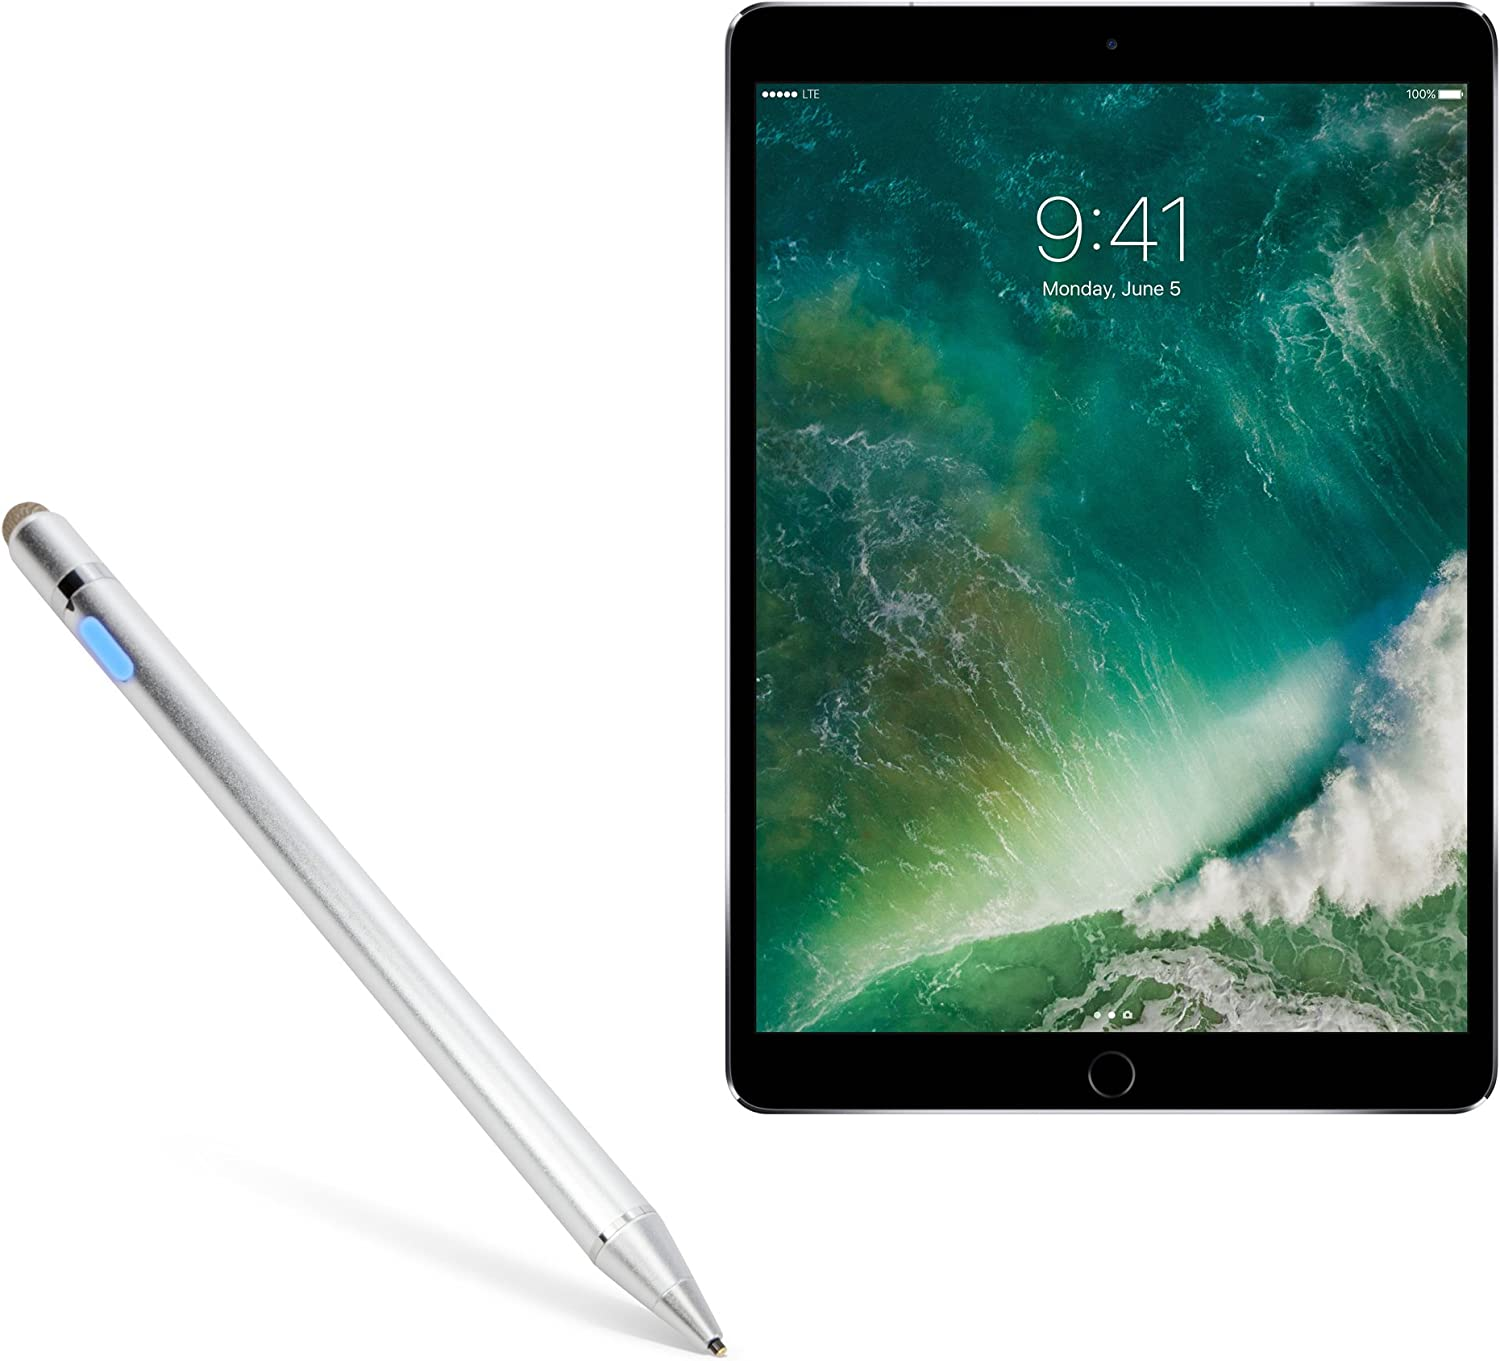 iPad Pro 10.5 (2017) Stylus Pen, BoxWave [AccuPoint Active Stylus] Electronic Stylus with Ultra Fine Tip for Apple iPad Pro 10.5 (2017) - Metallic Silver